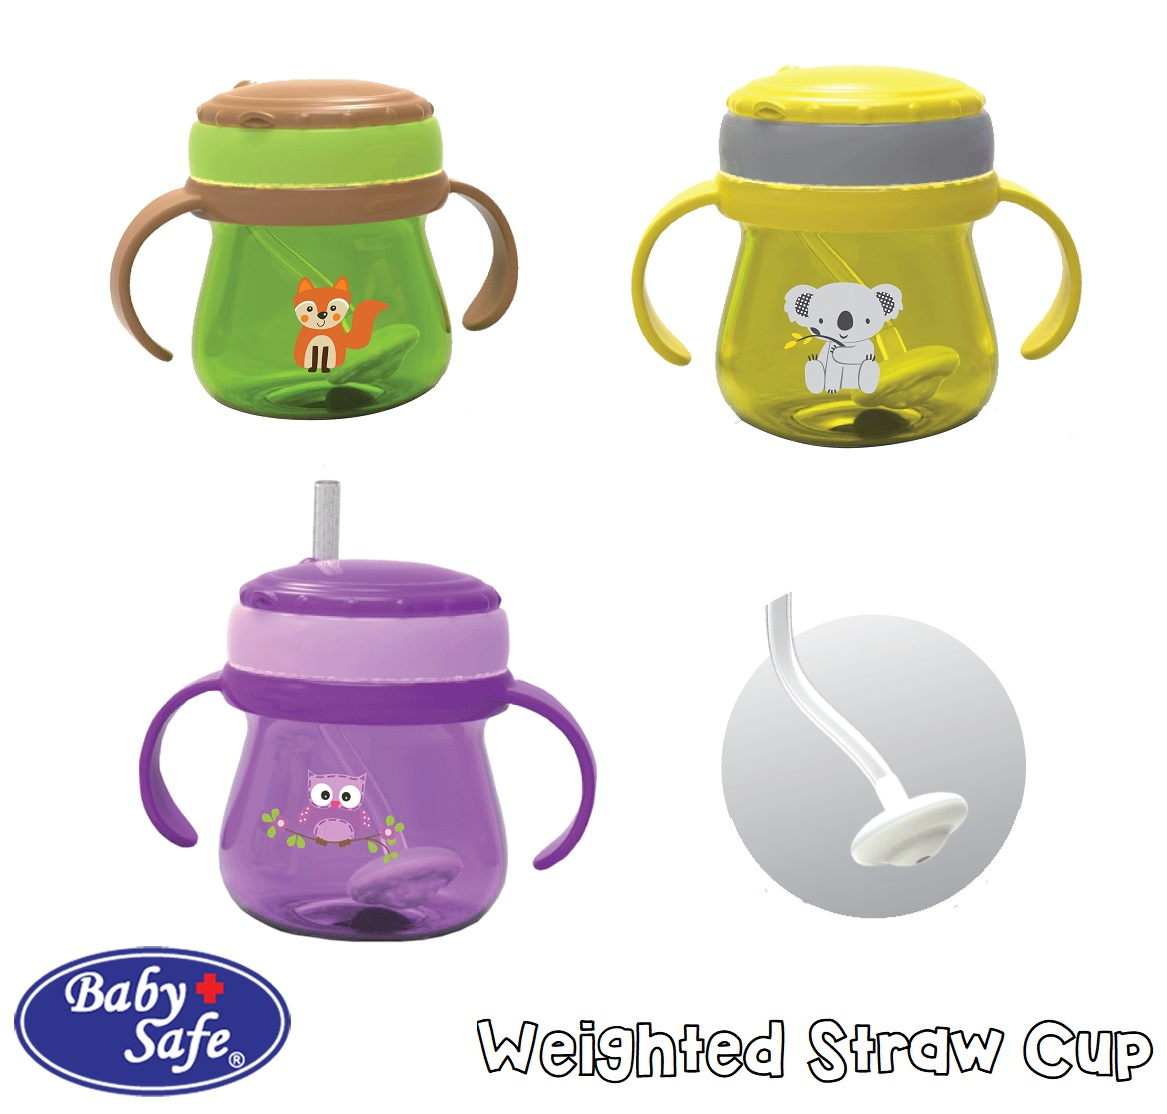 Babysafe Weighted Straw Cup Botol Sedotan Bayi Dengan Pemberat Tommee Tippee Insulated Sippee 12m Yellow Bee